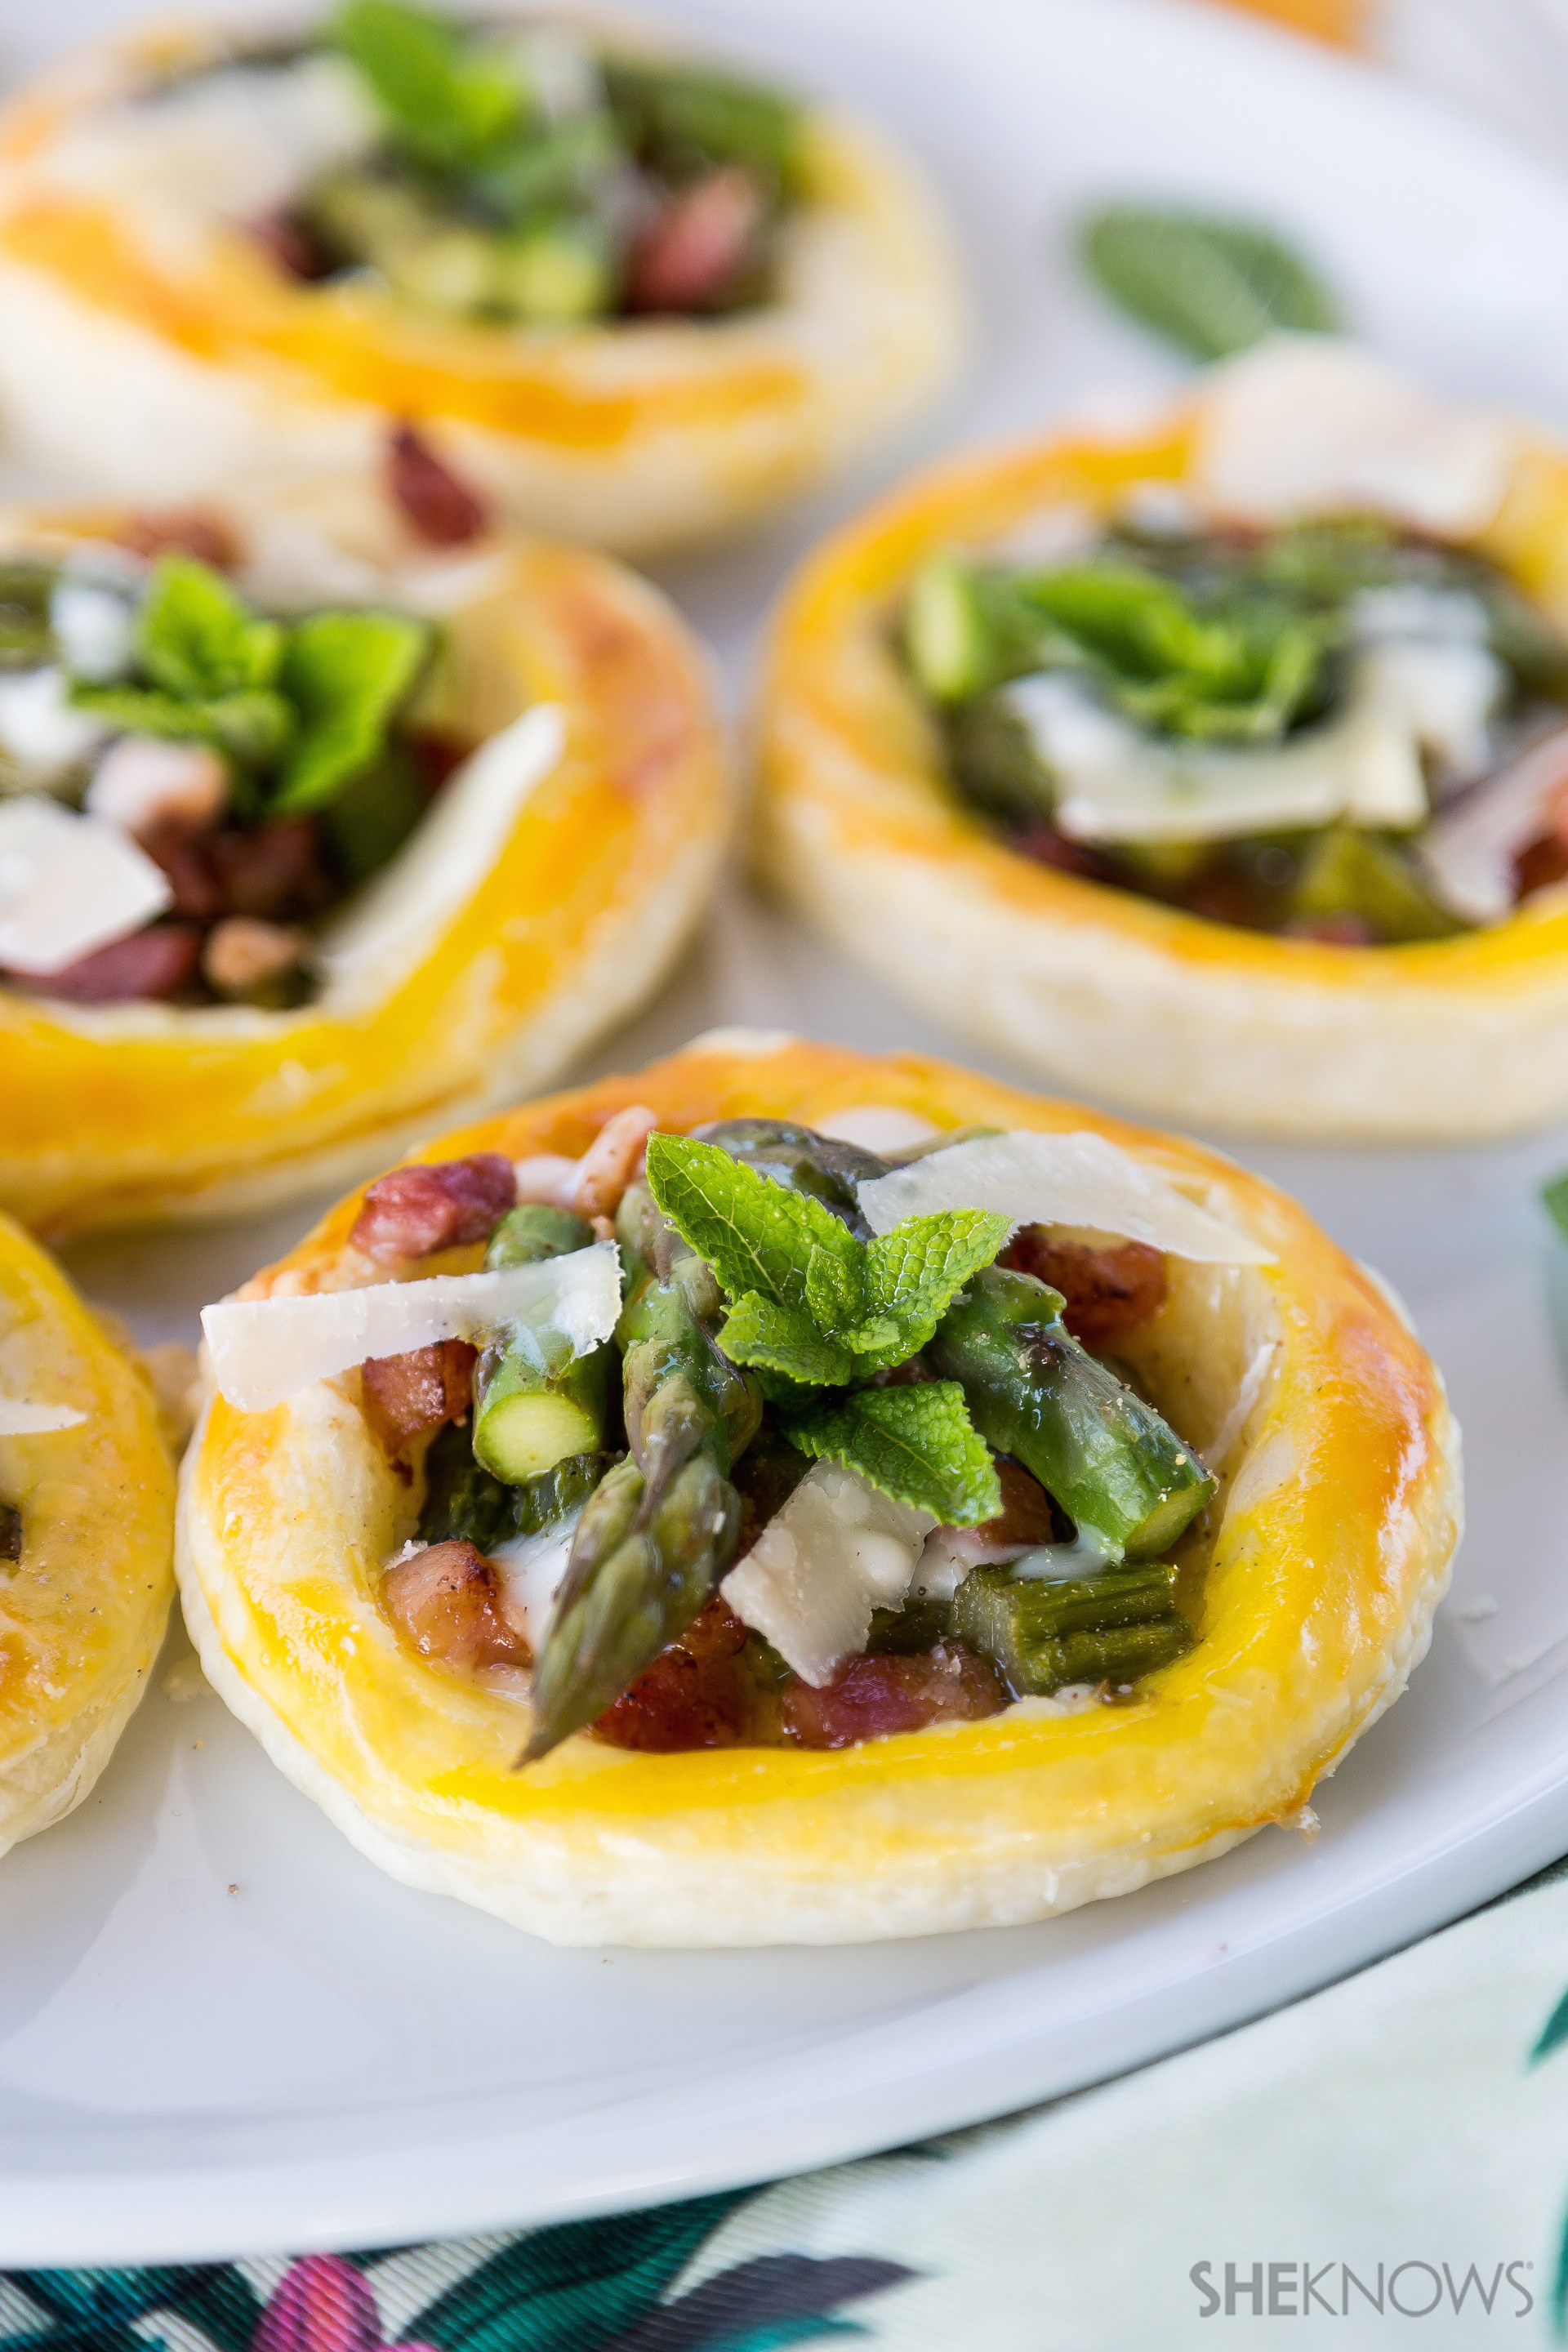 Tarts with asparagus, pancetta and cream of Parmesan recipe